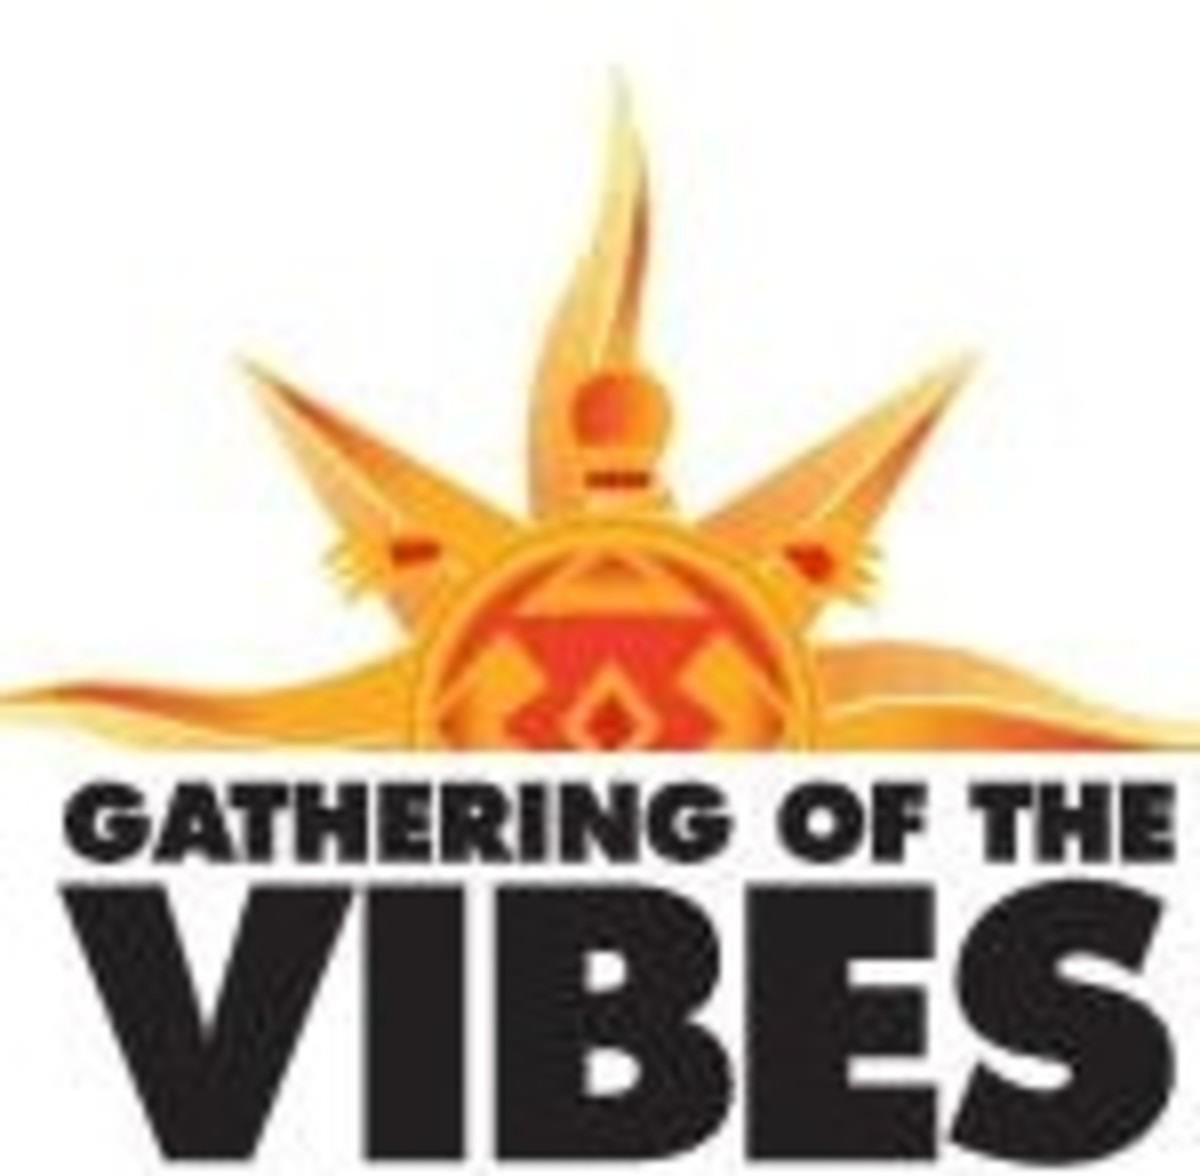 Gathering of the Vibes_logo